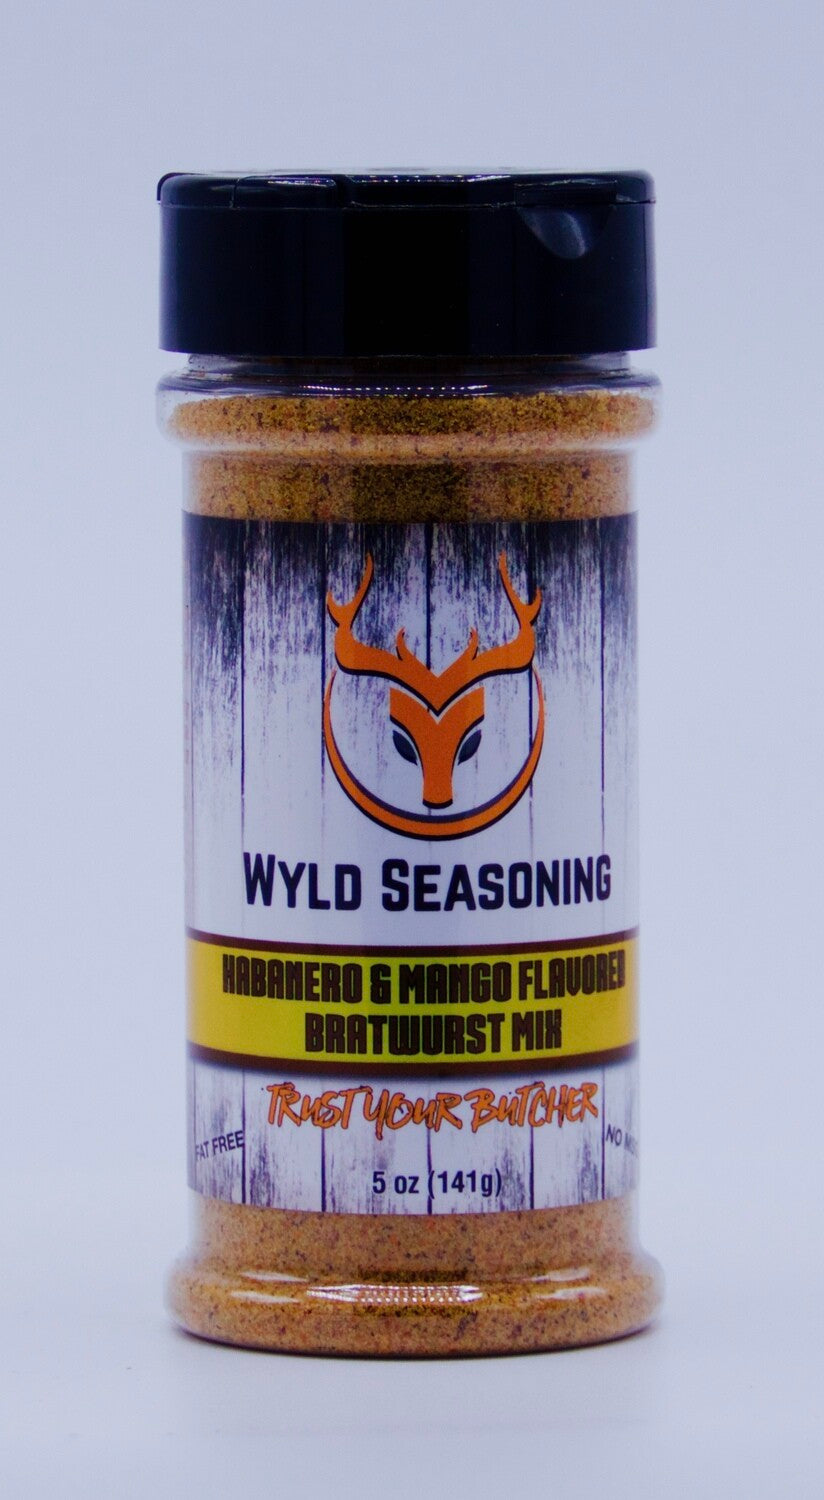 Wyld Seasoning Habanero & Mango Flavored Bratwurst Mix 5 oz.